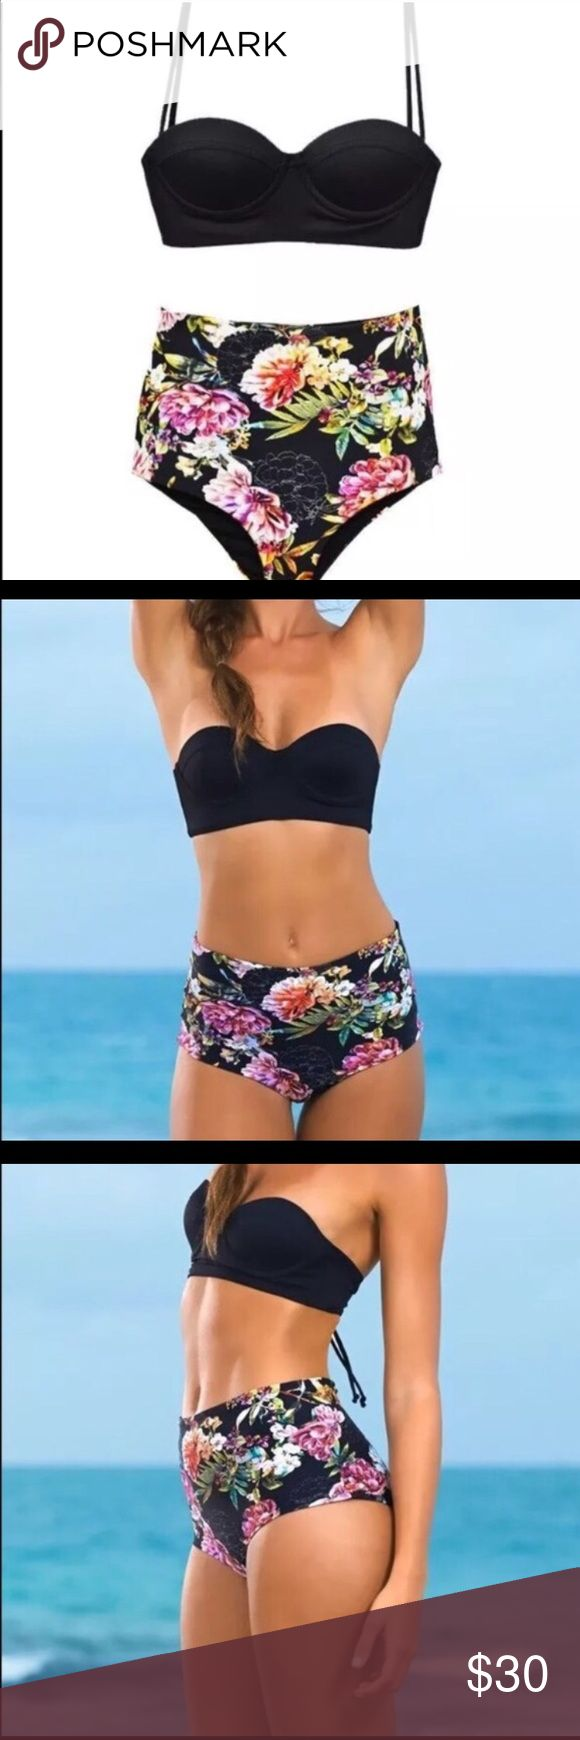 Floral high waisted bikini! Super cute & brand new New with tags high waisted bikini - the whole suit is adorable and the top specifically is very nice and versatile :) Swim Bikinis